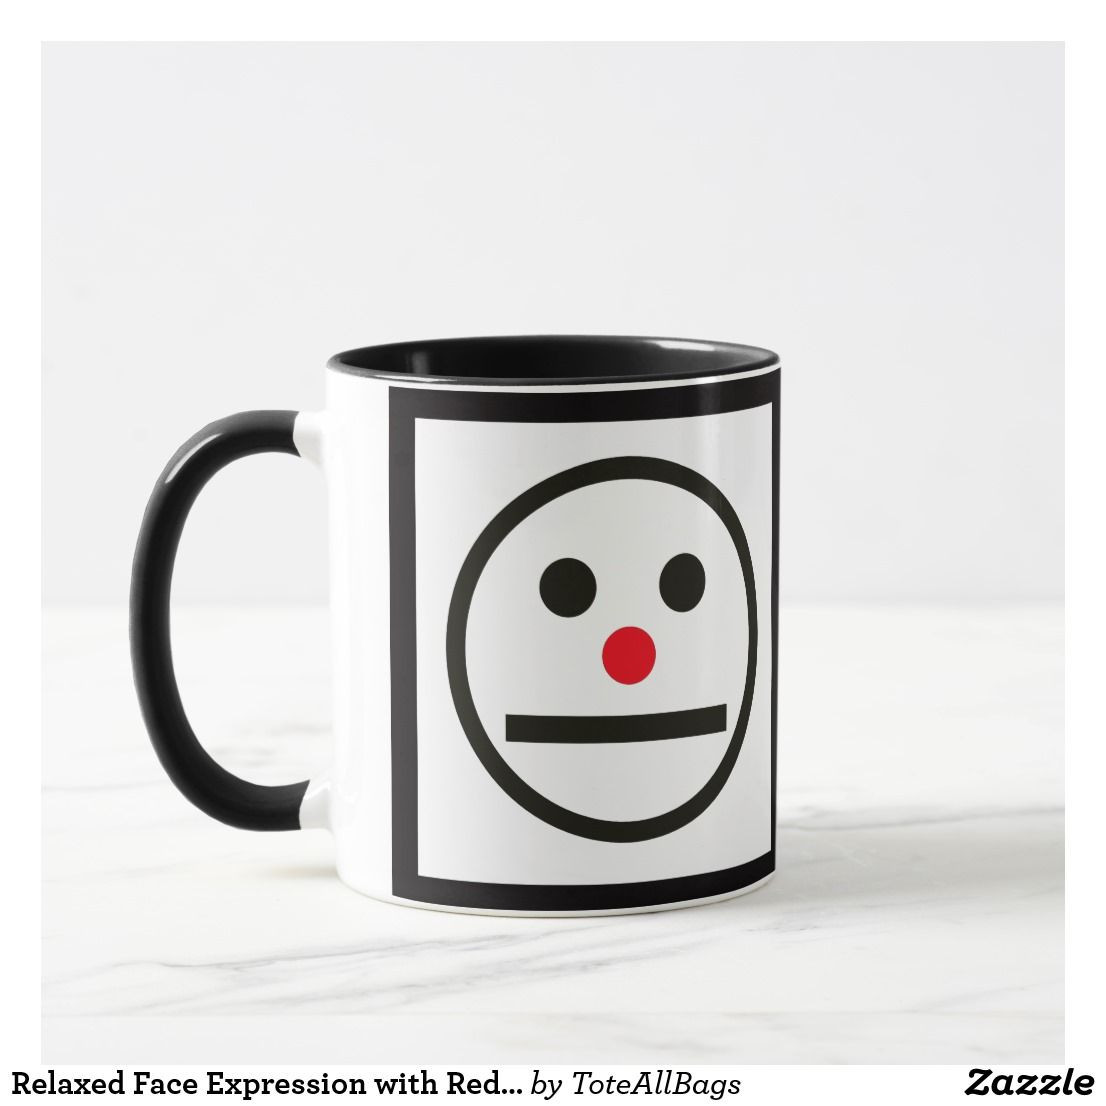 yellow smiley face vase of relaxed face expression with red nose mug teas and coffee pertaining to relaxed face expression with red nose mug